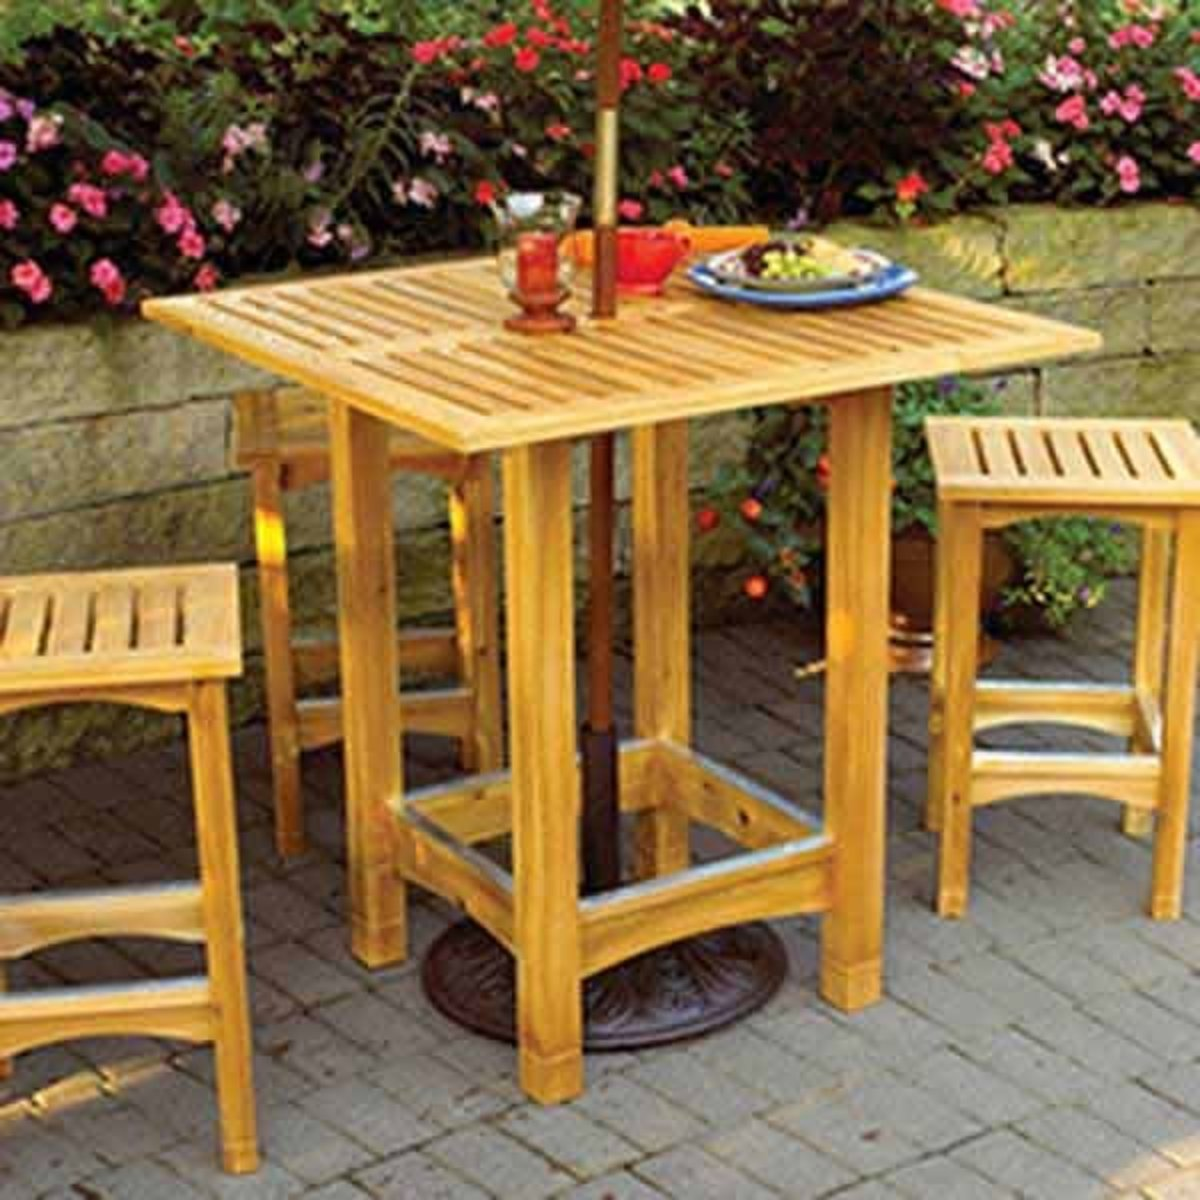 Wood Magazine Woodworking Project Paper Plan To Build Bistro Patio Table